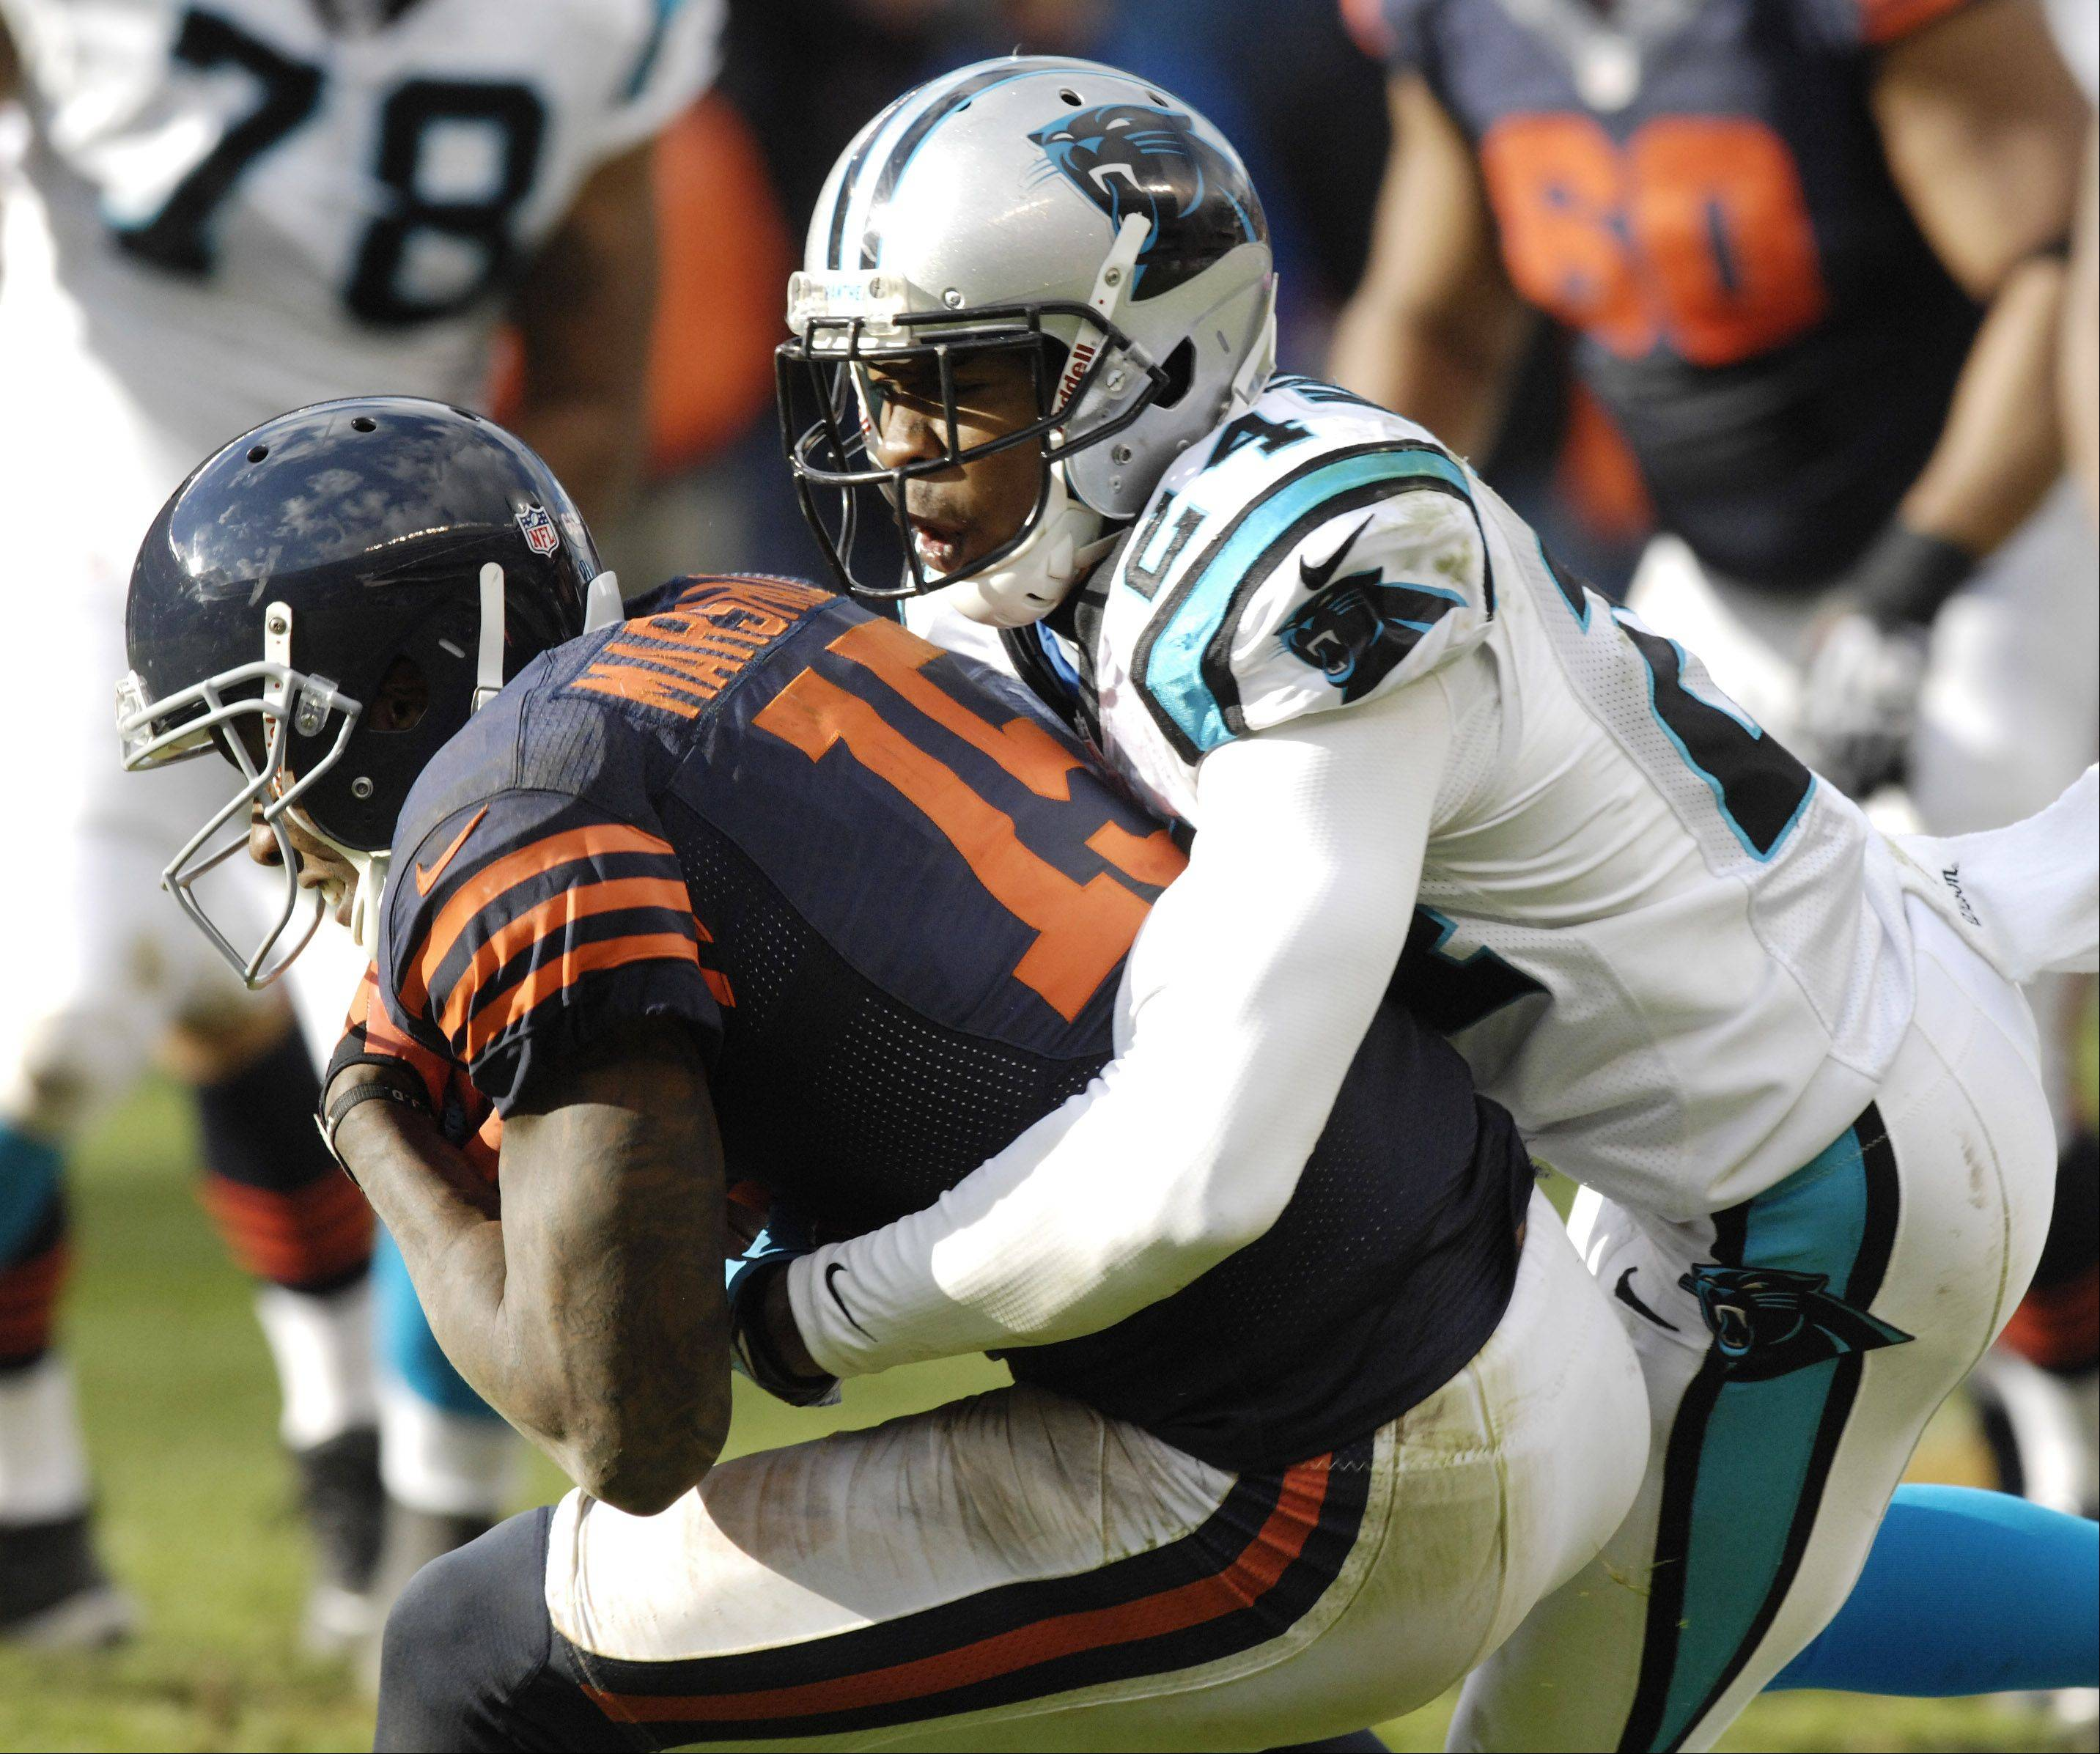 Chicago Bears wide receiver Brandon Marshall gets tackled by Carolina Panthers defensive back Josh Norman on the final drive during Sunday's game at Soldier Field.